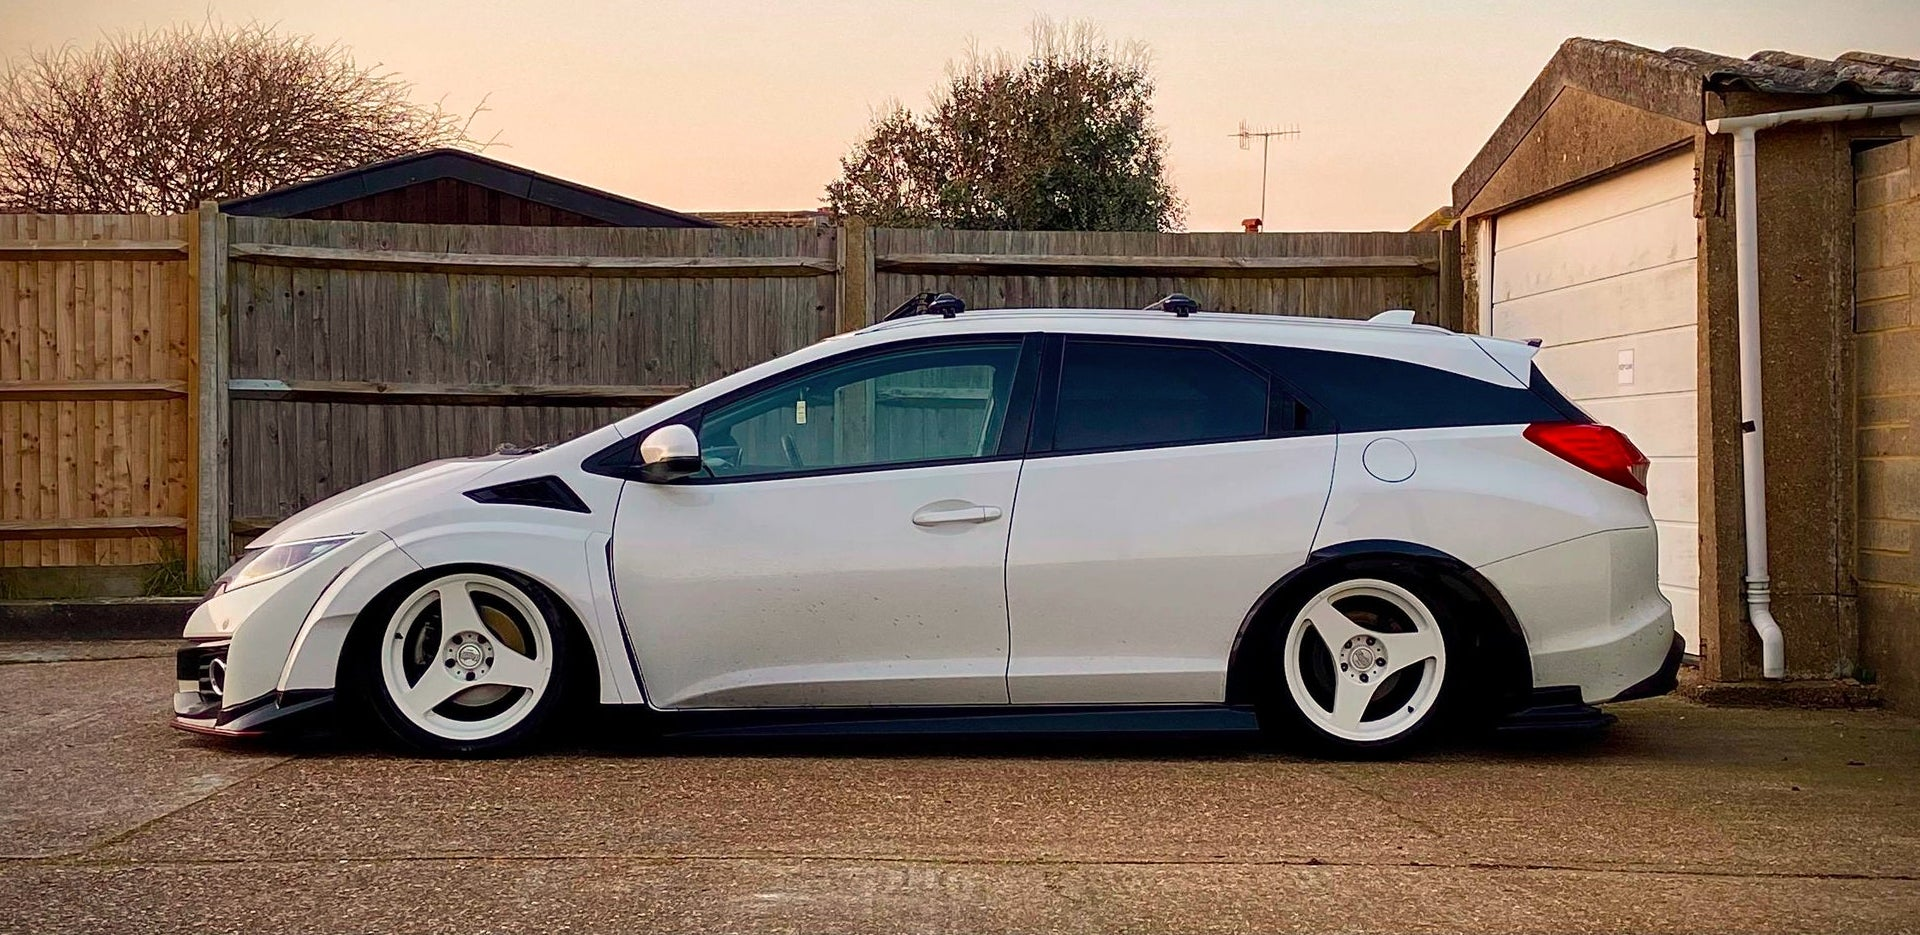 This 2015 Honda Civic Looks Like It Time-Travelled From 3015